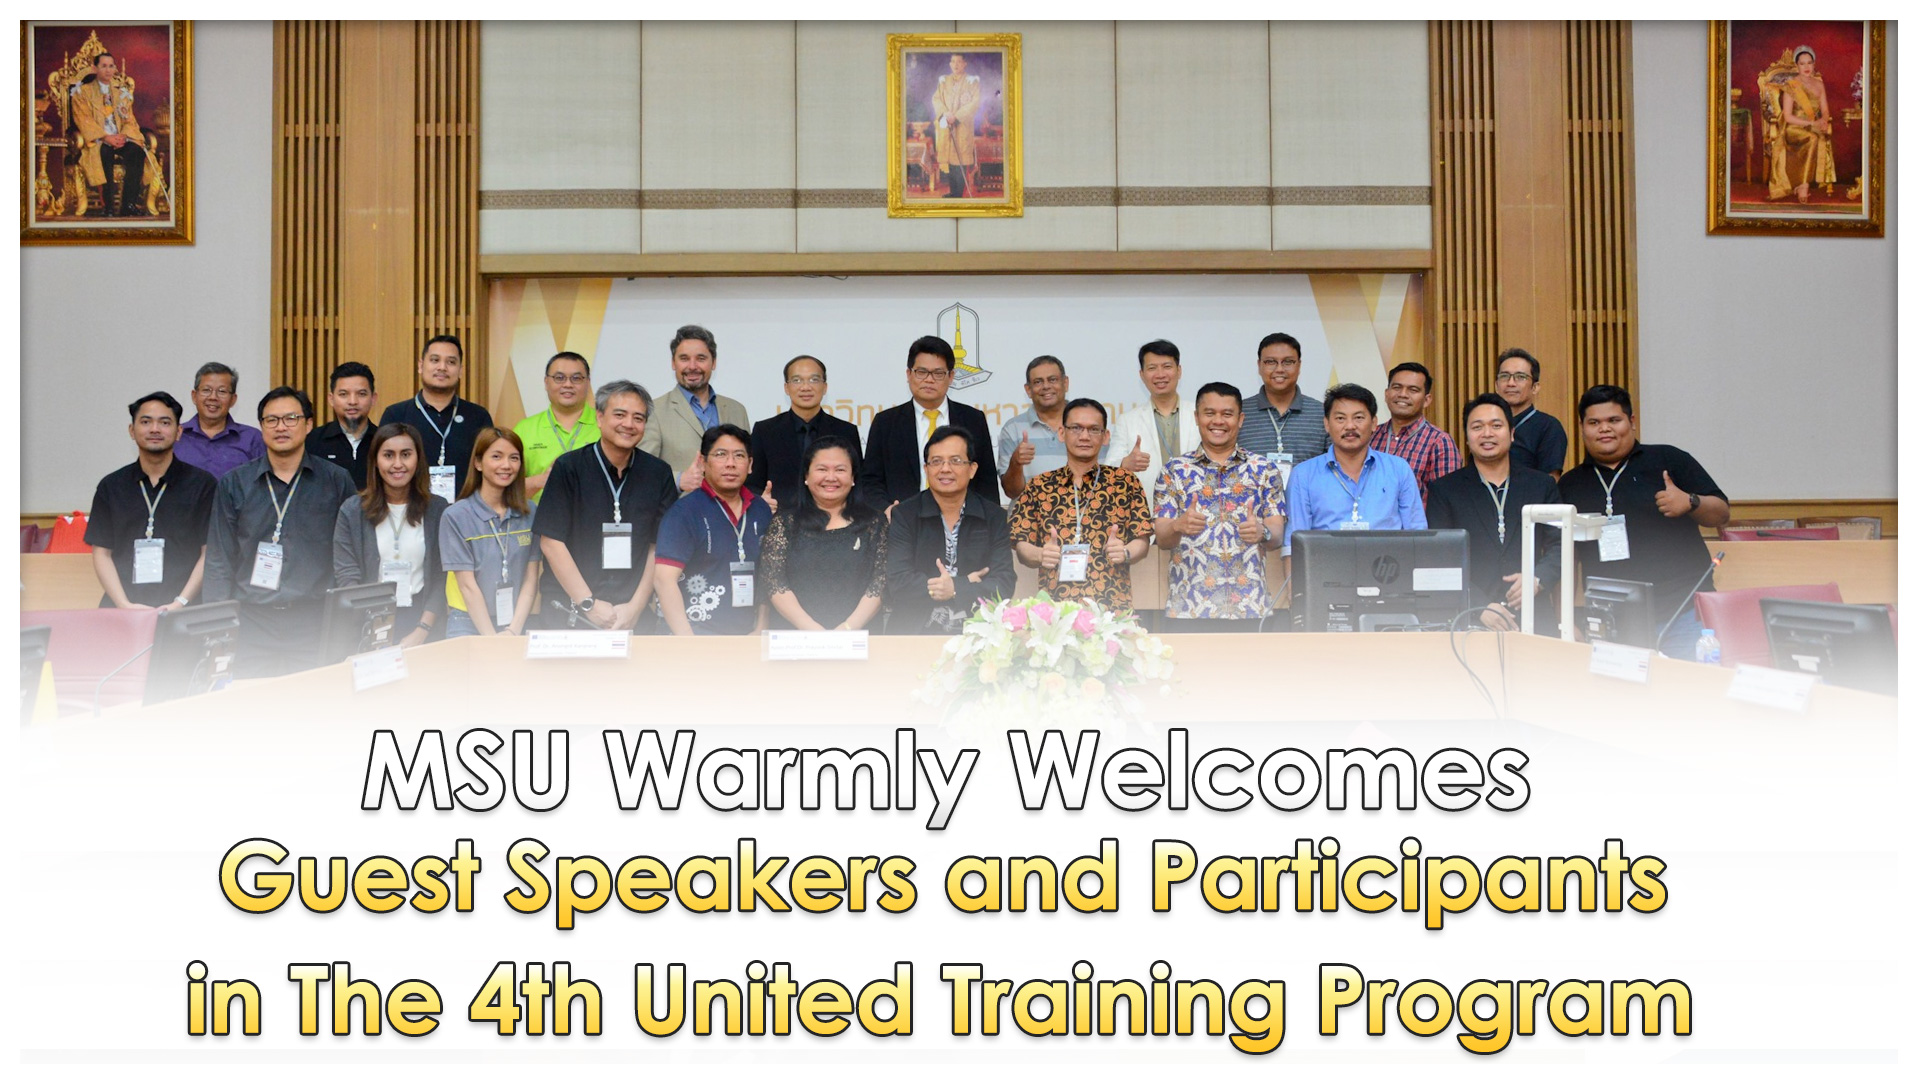 MSU Warmly Welcomes Guest Speakers and Participants in The 4th United Training Program.